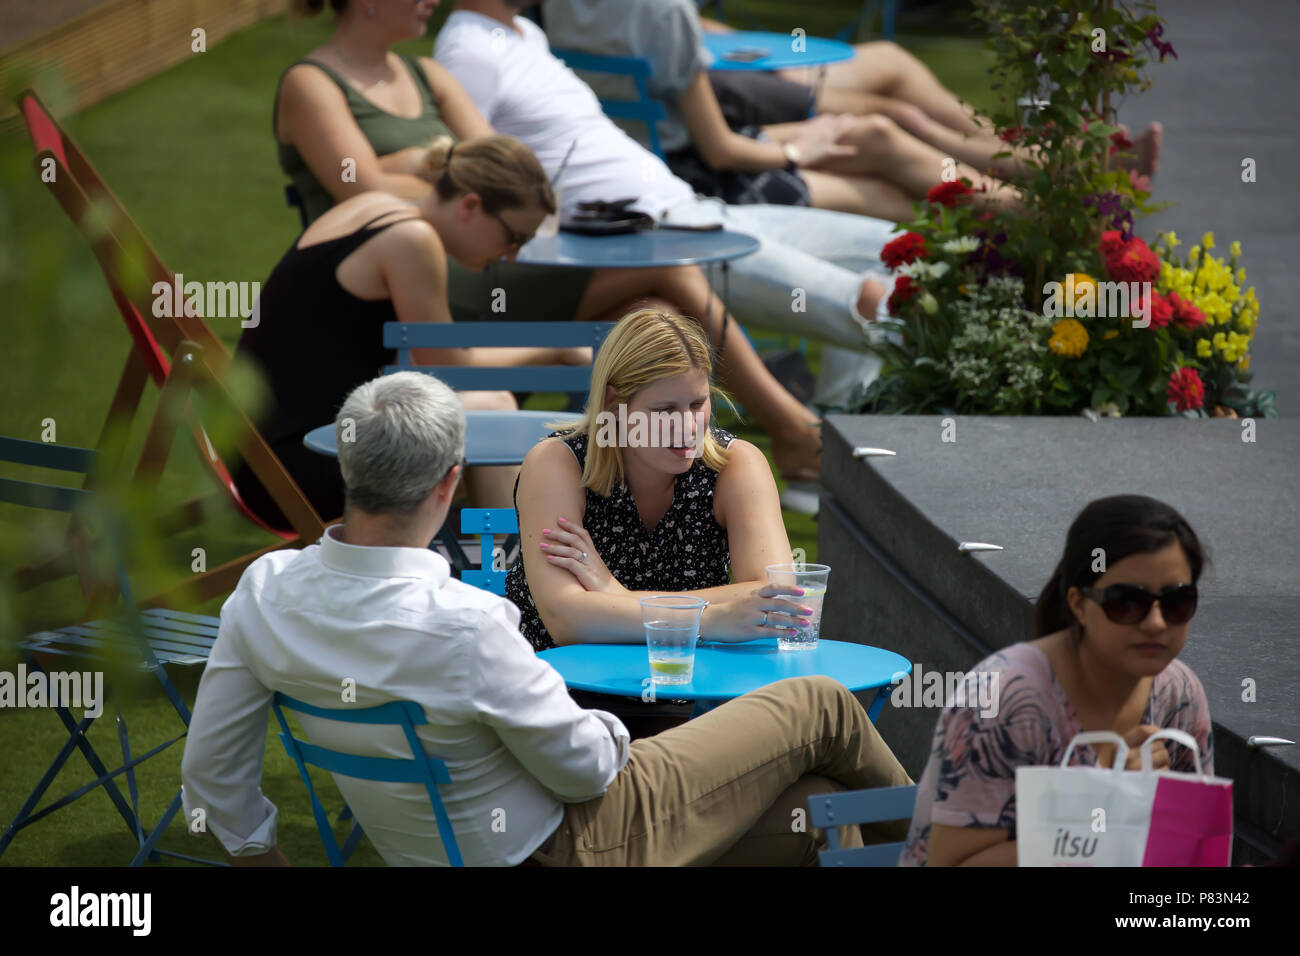 London,UK,9th July 2018,Hot weather continues in London as visitors and tourists enjoy the sunshine, the weather forecast is to remain hot and sunny for the foreseeable future, so far this is the hottest summer since 1976. Credit Keith Larby/Alamy Live News - Stock Image